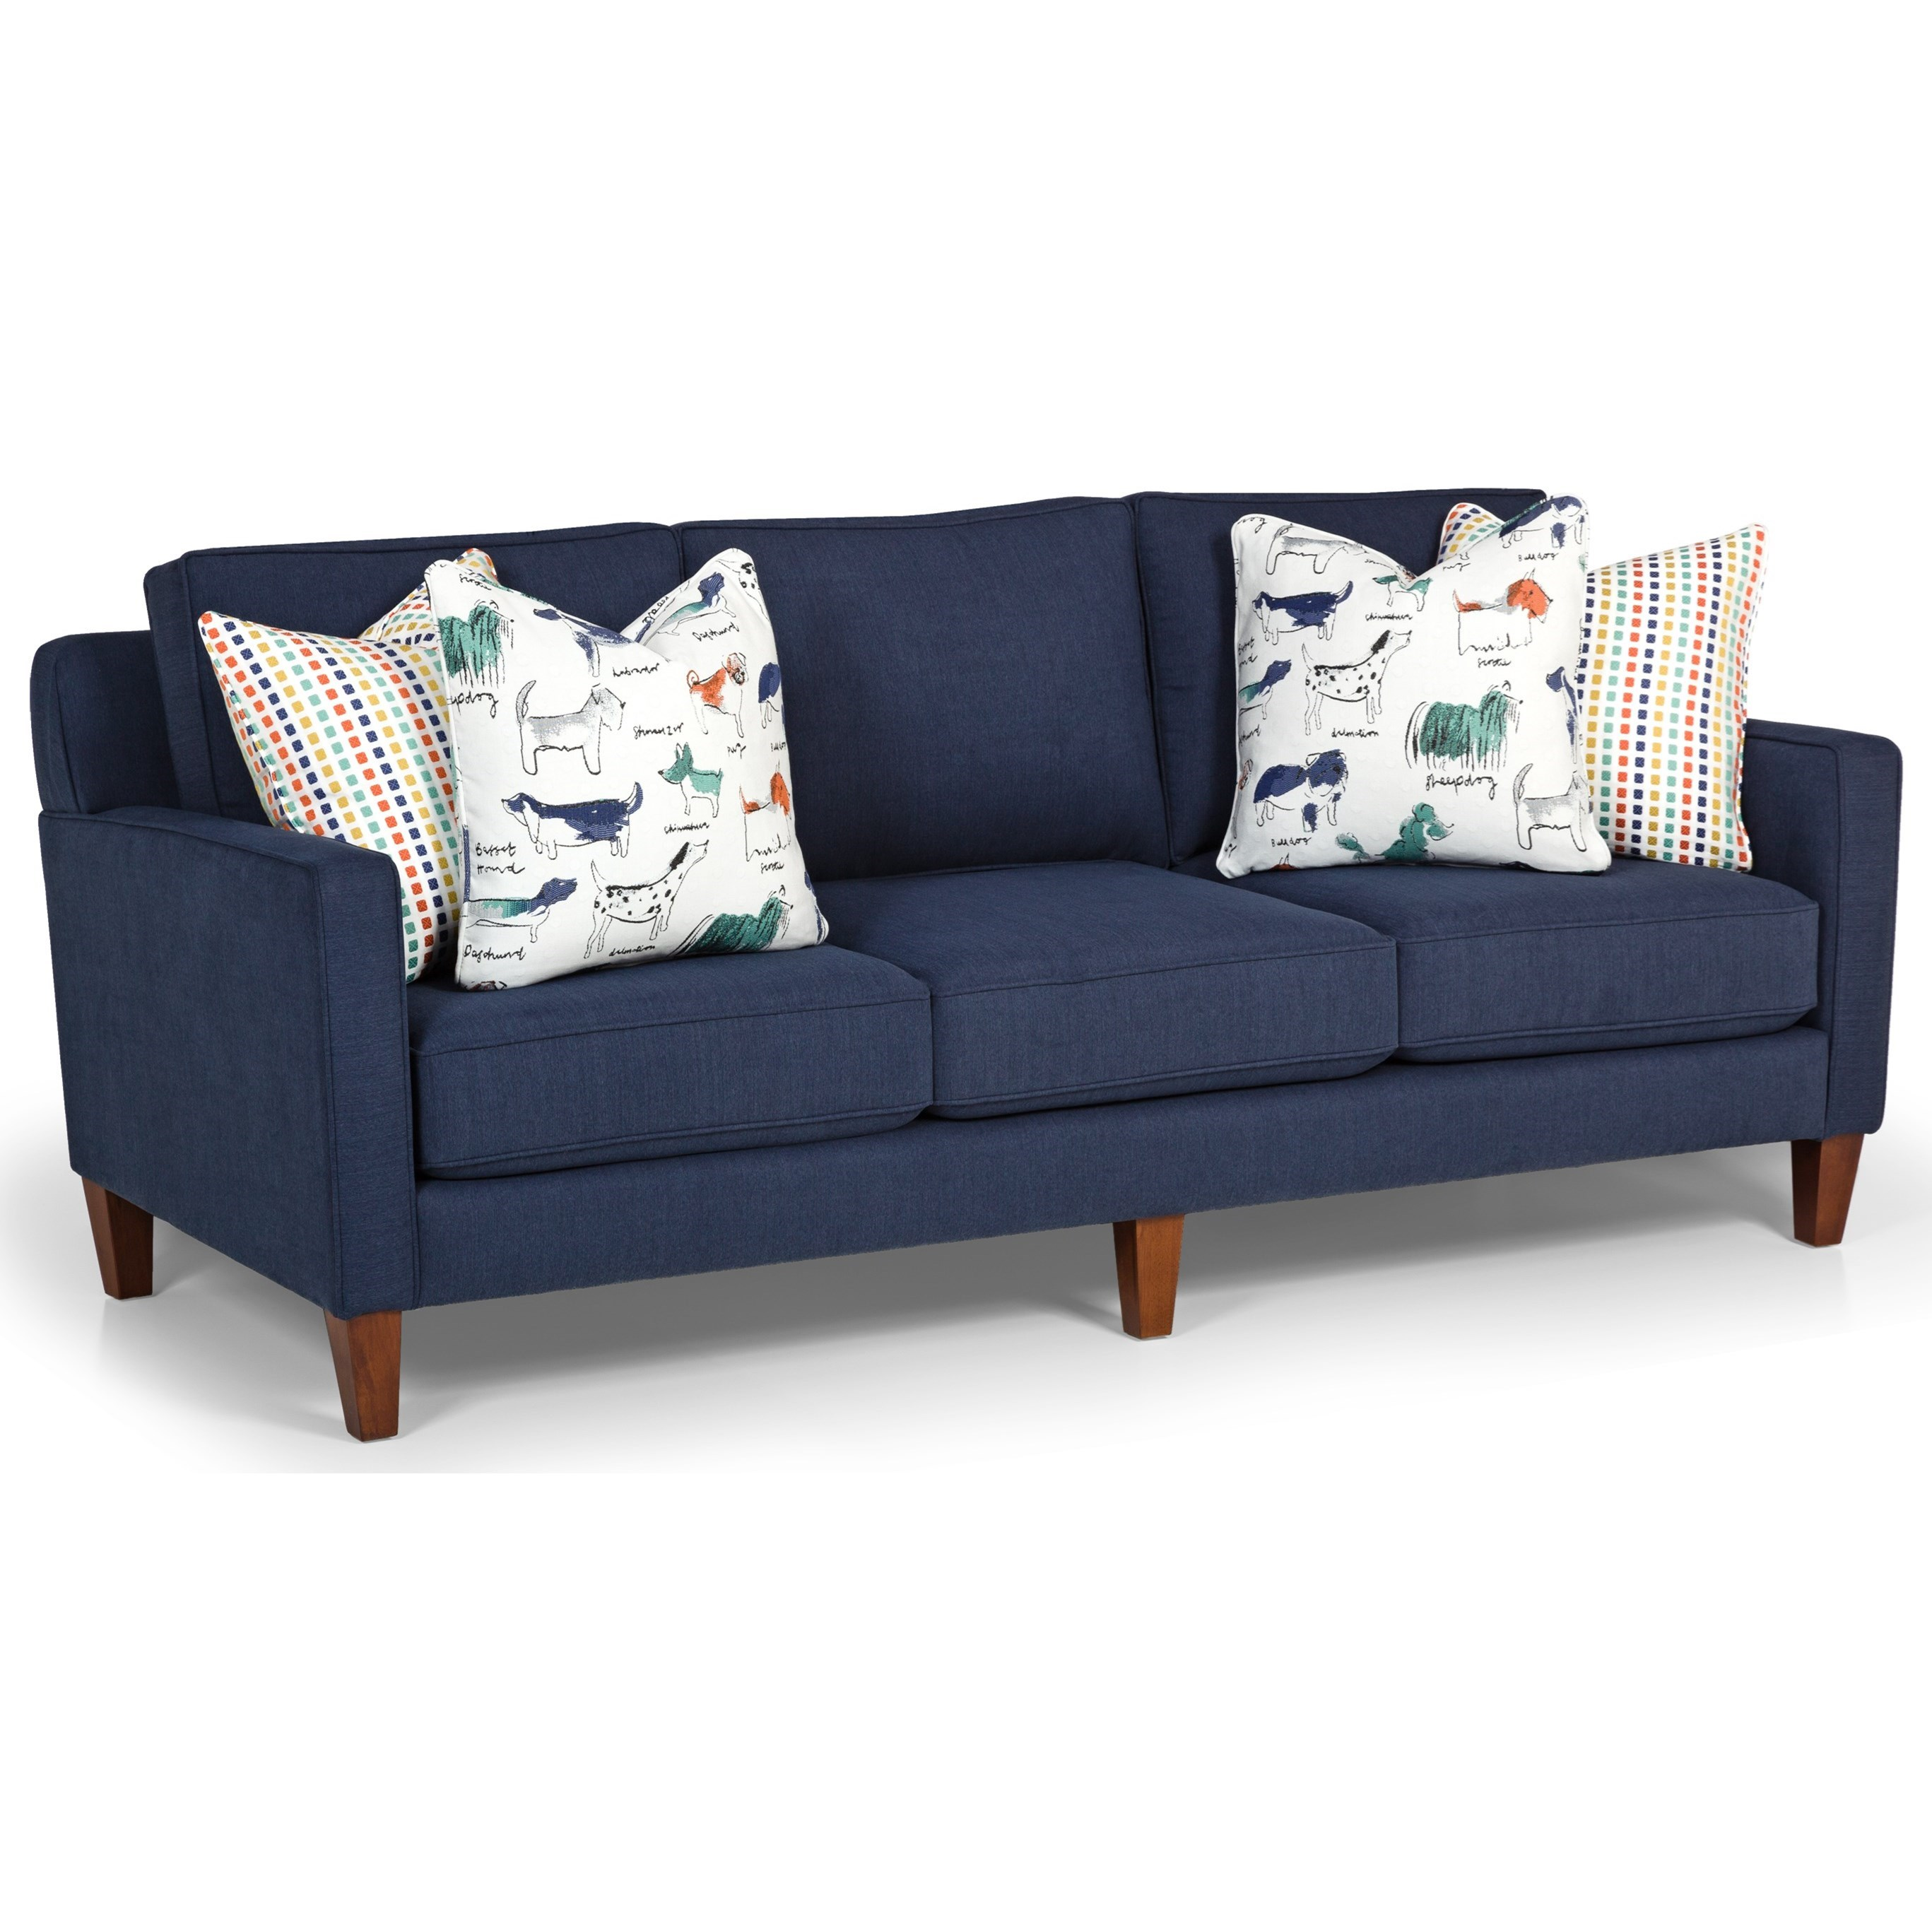 477 Sofa by Stanton at Wilson's Furniture